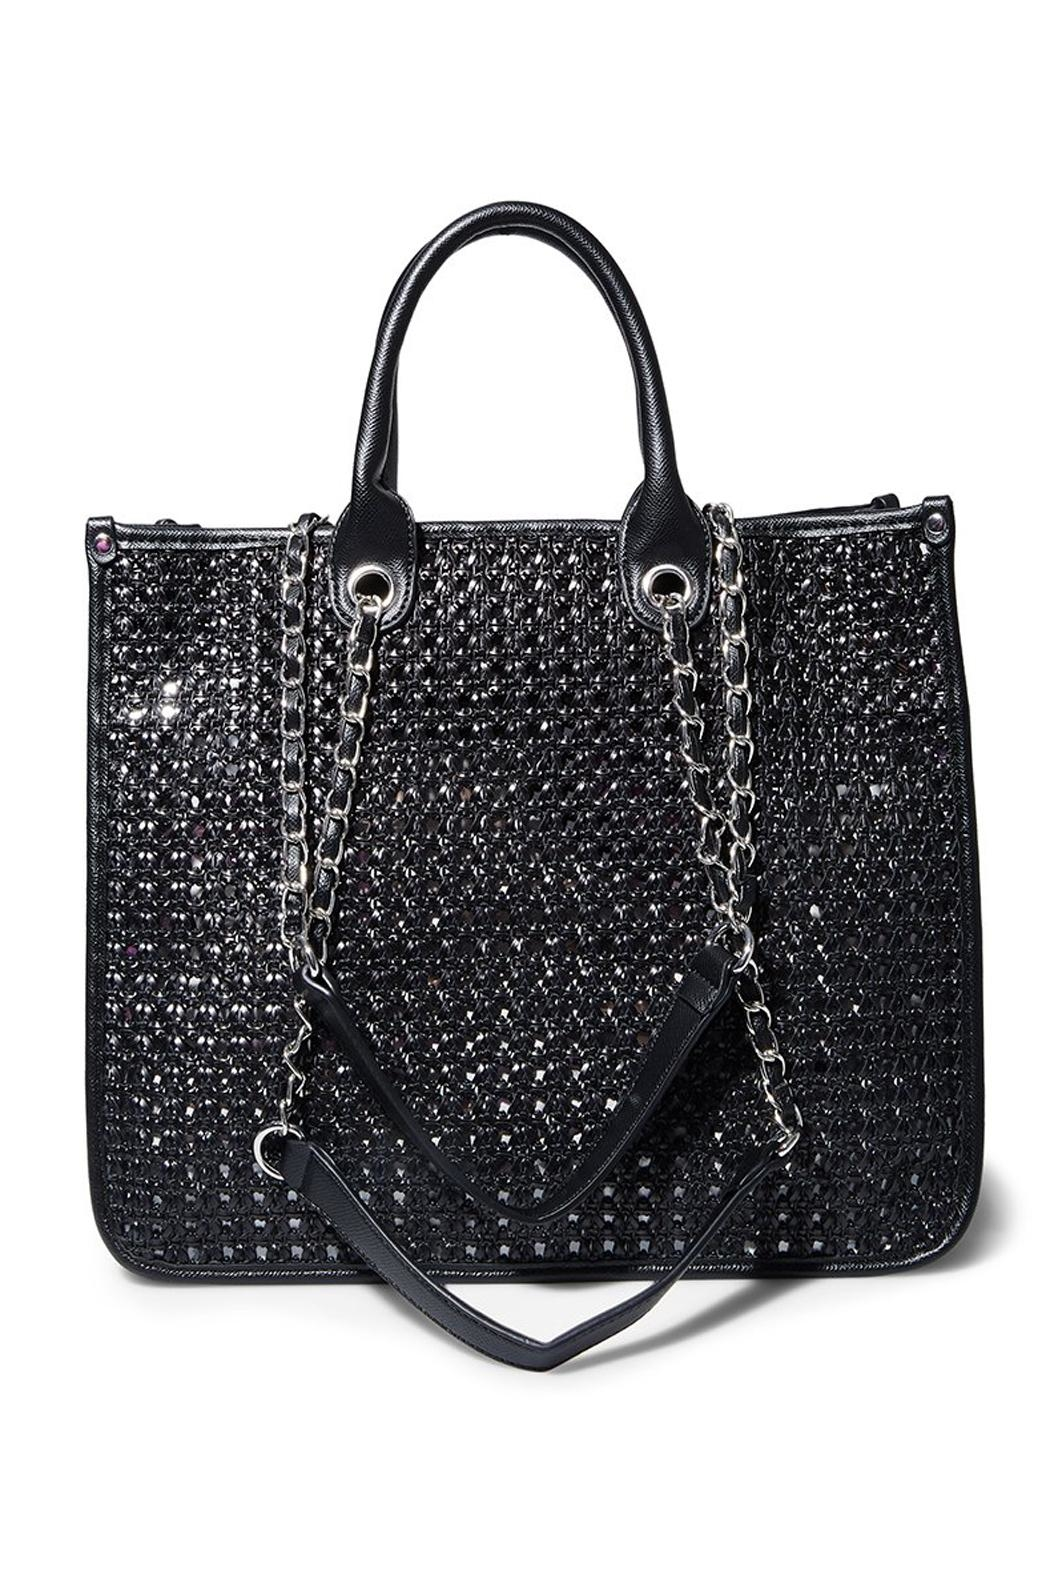 Steven by Steve Madden Bstacy Woven Tote - Main Image